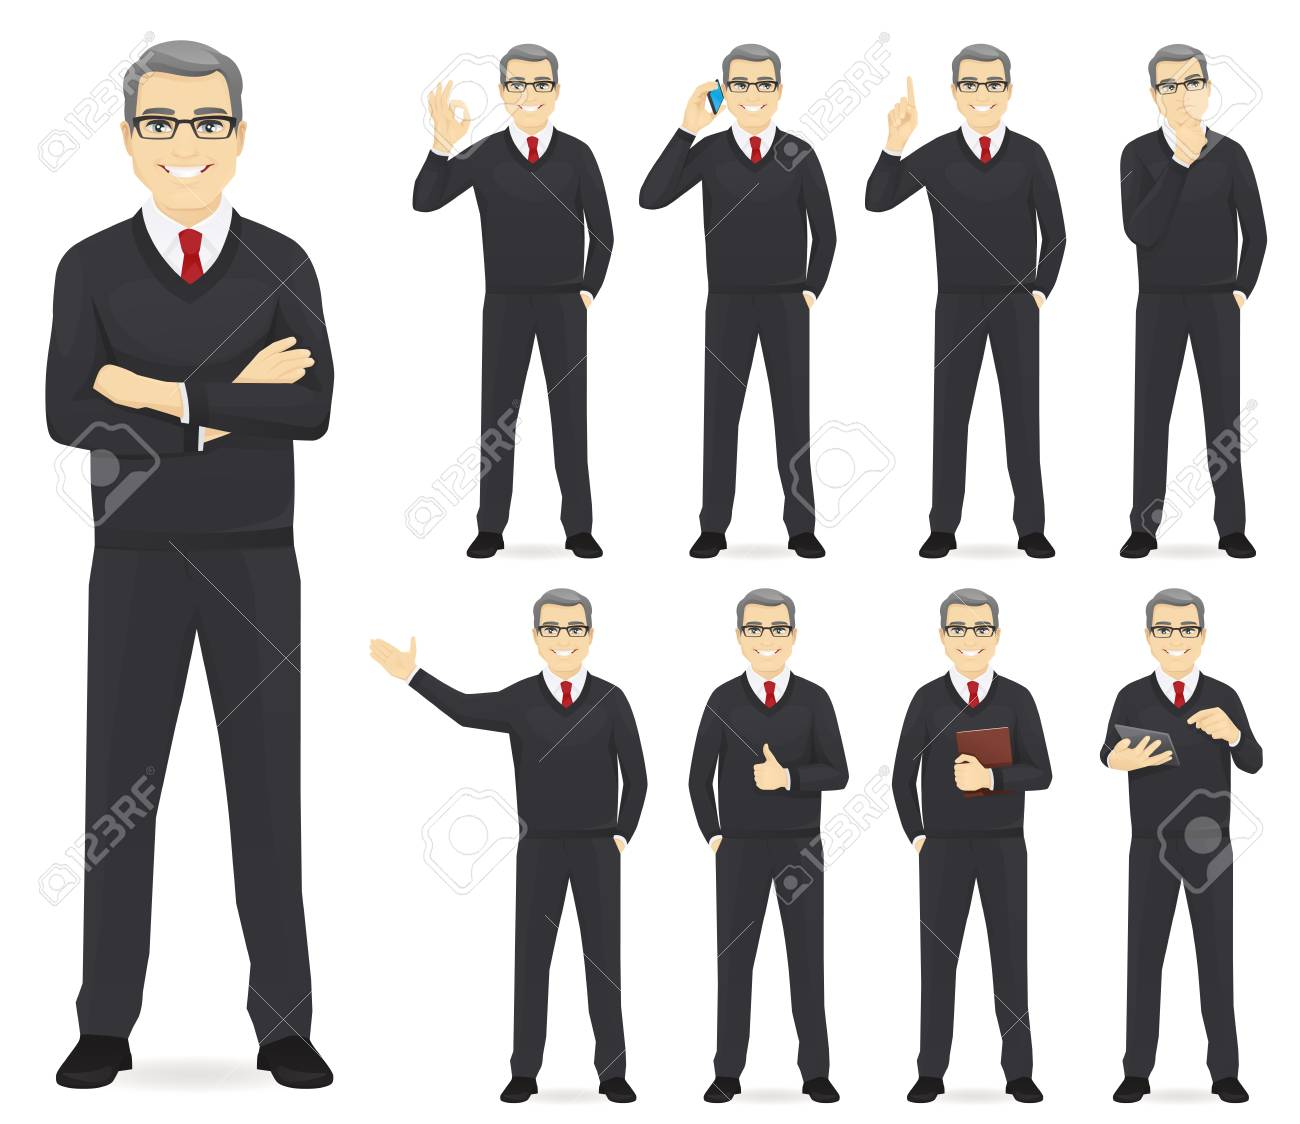 Business man set different gestures isolated vector illustration - 114843884